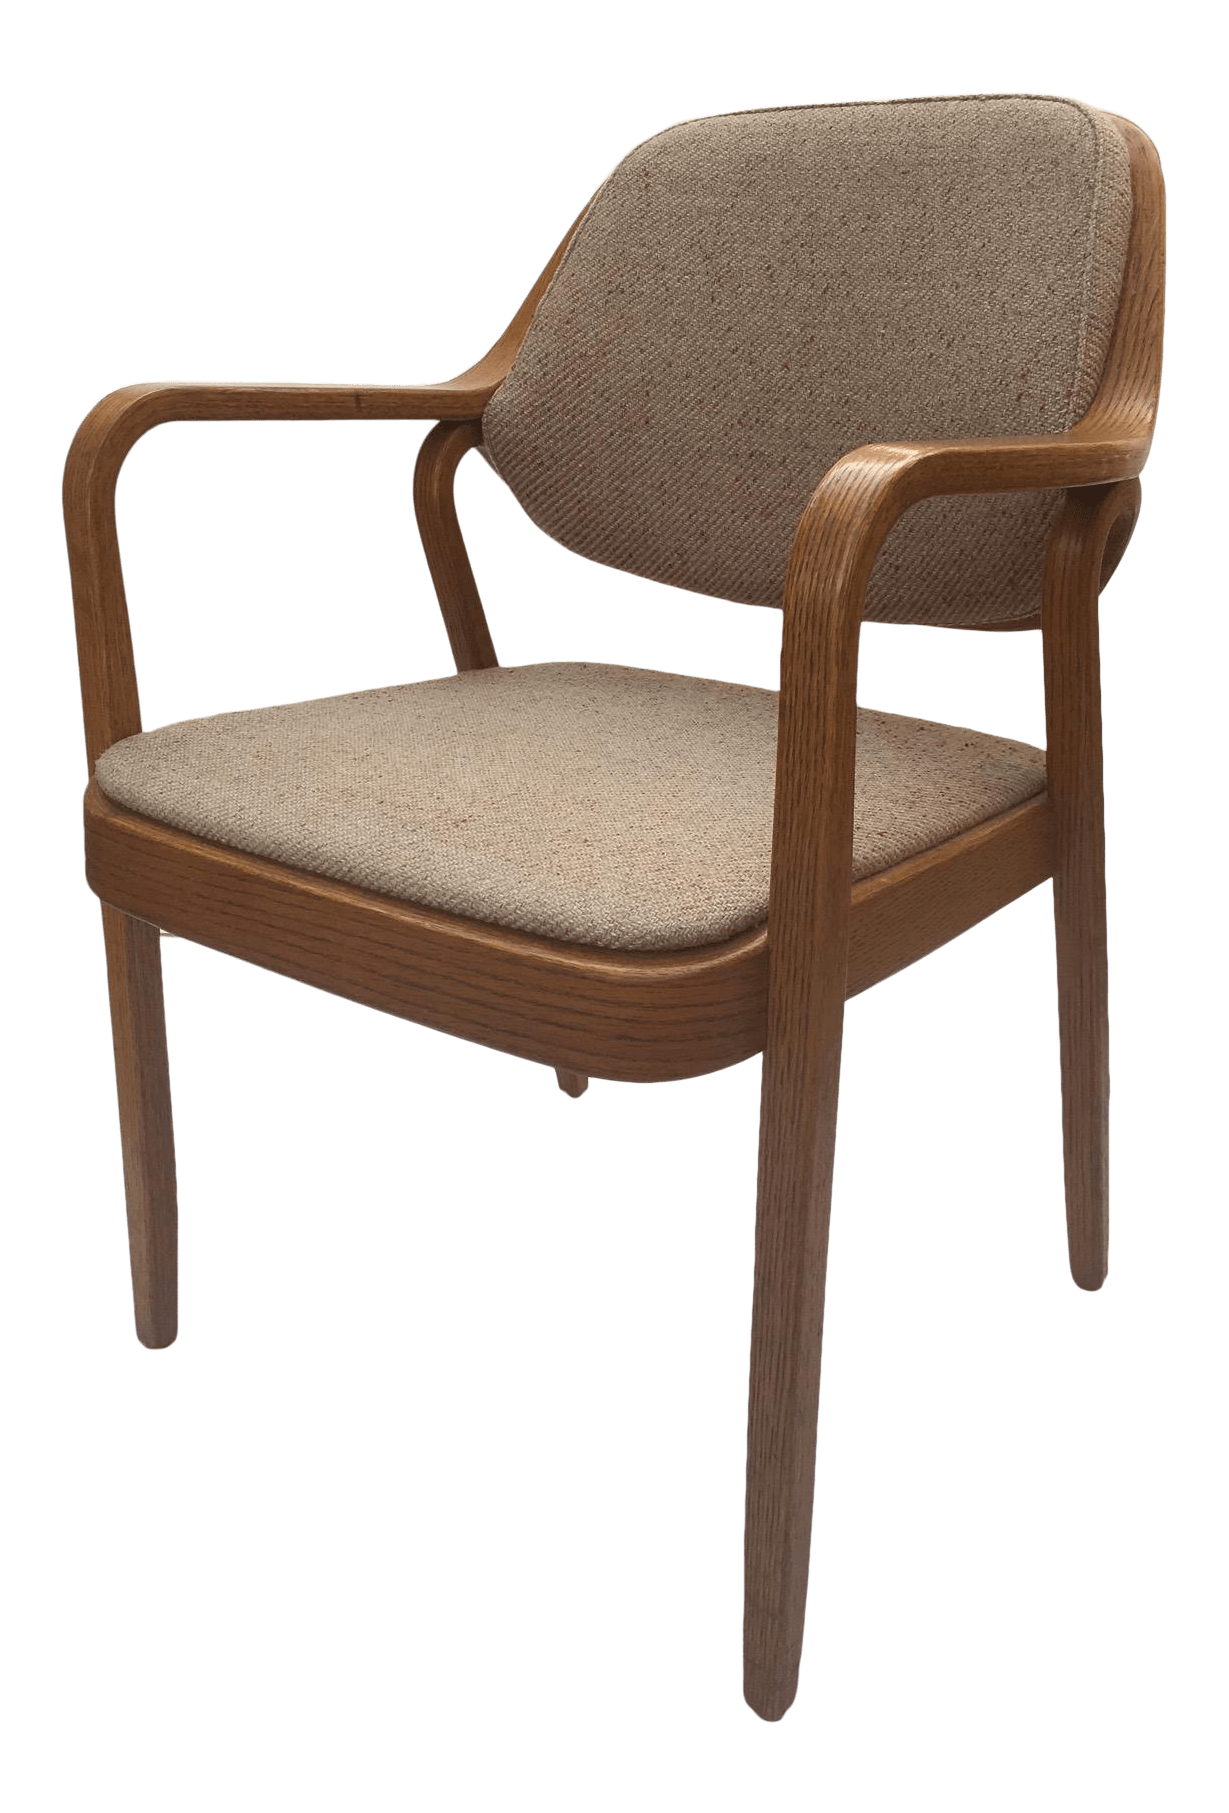 Knoll International Don Pettit For Knoll International Bentwood Arm Desk Chair